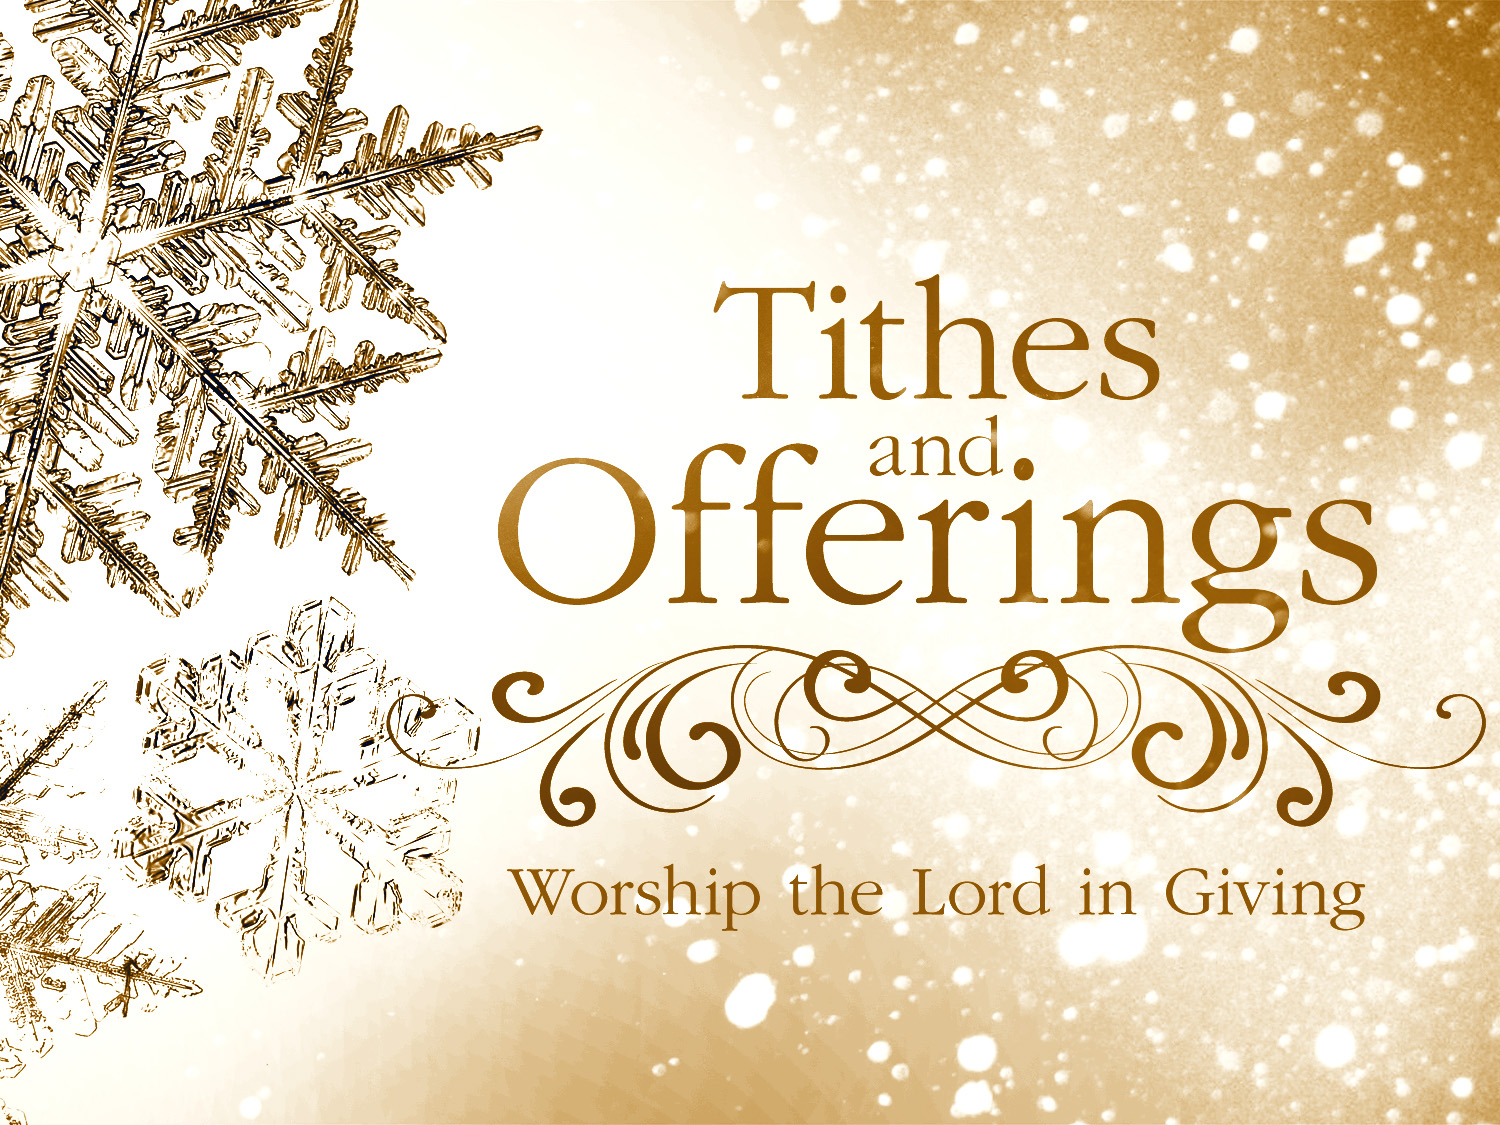 tithing Sometimes tithing tests our hearts and helps us deal with covetousness someone once said that tithing is god's cure for covetousness 5.